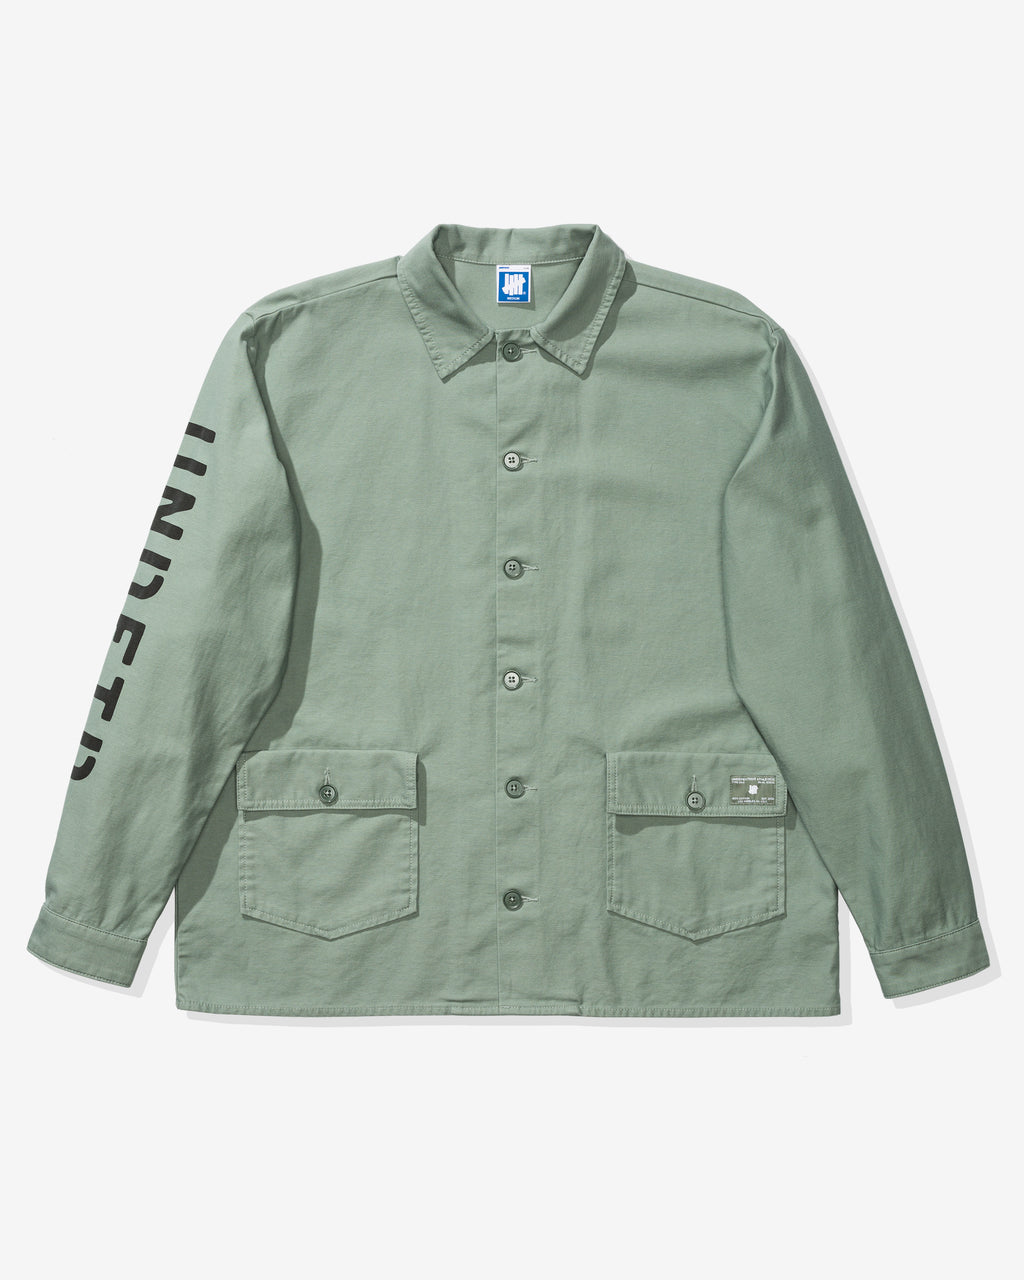 UNDEFEATED L/S BDU SHIRT - GREEN